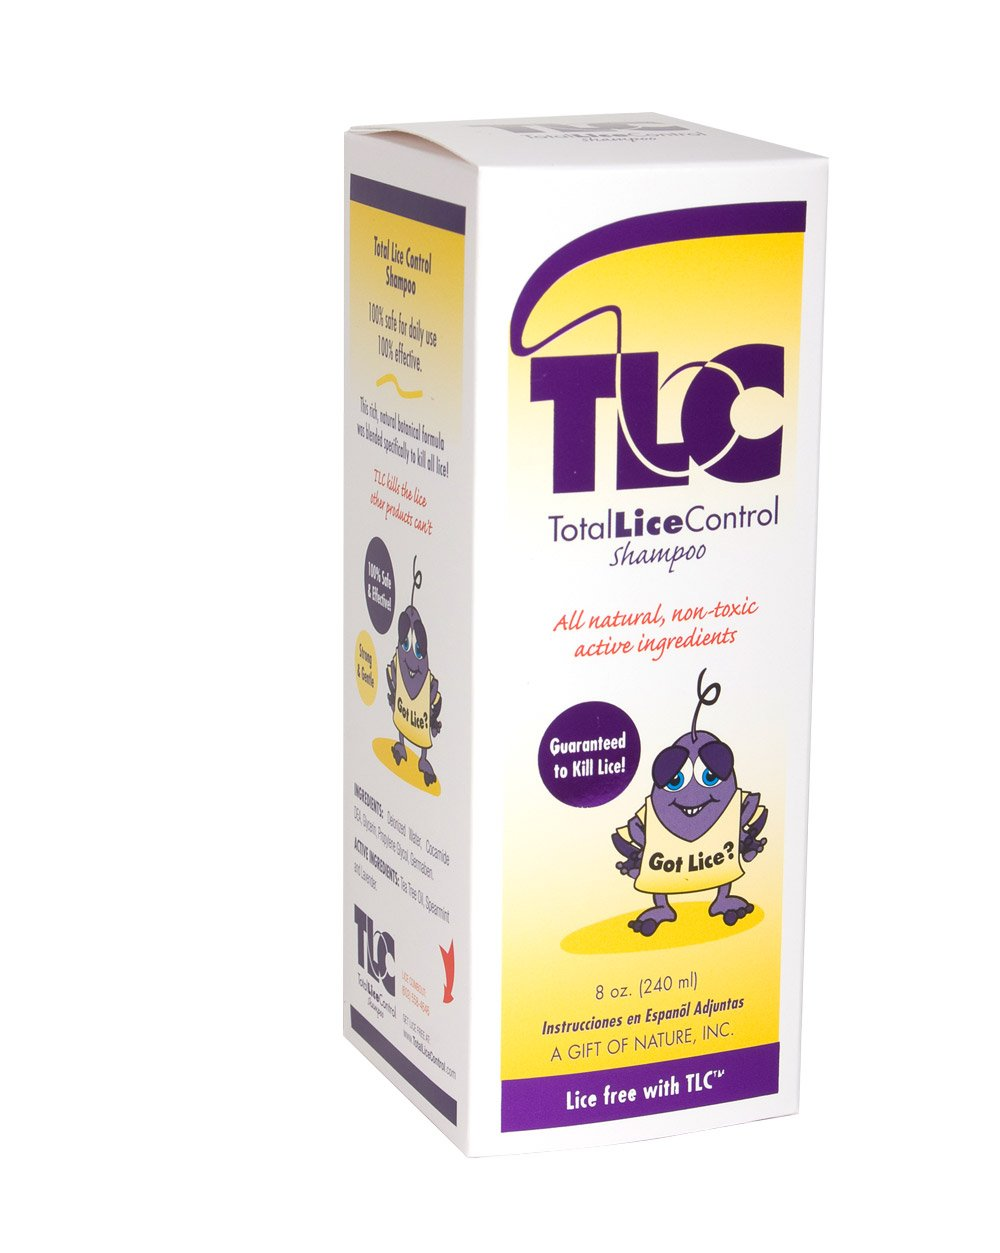 Total Lice Control Shampoo by TotalLiceControl